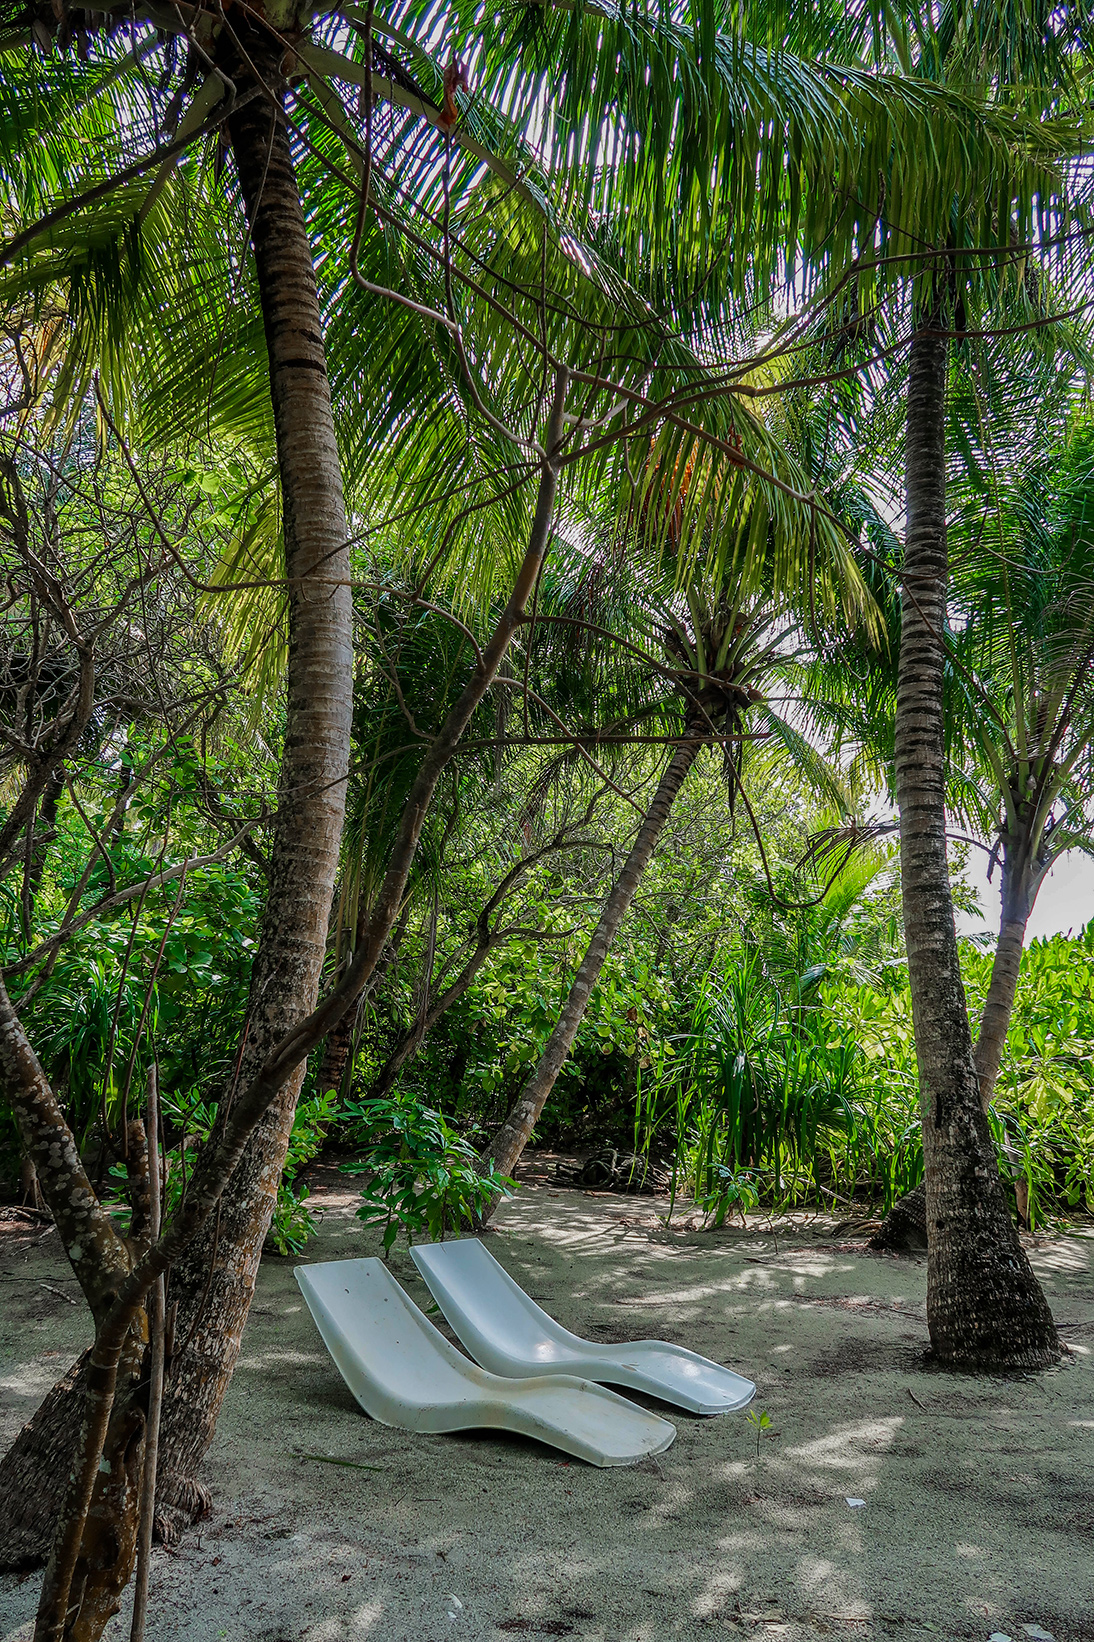 Omadhoo island jungle in the Maldives